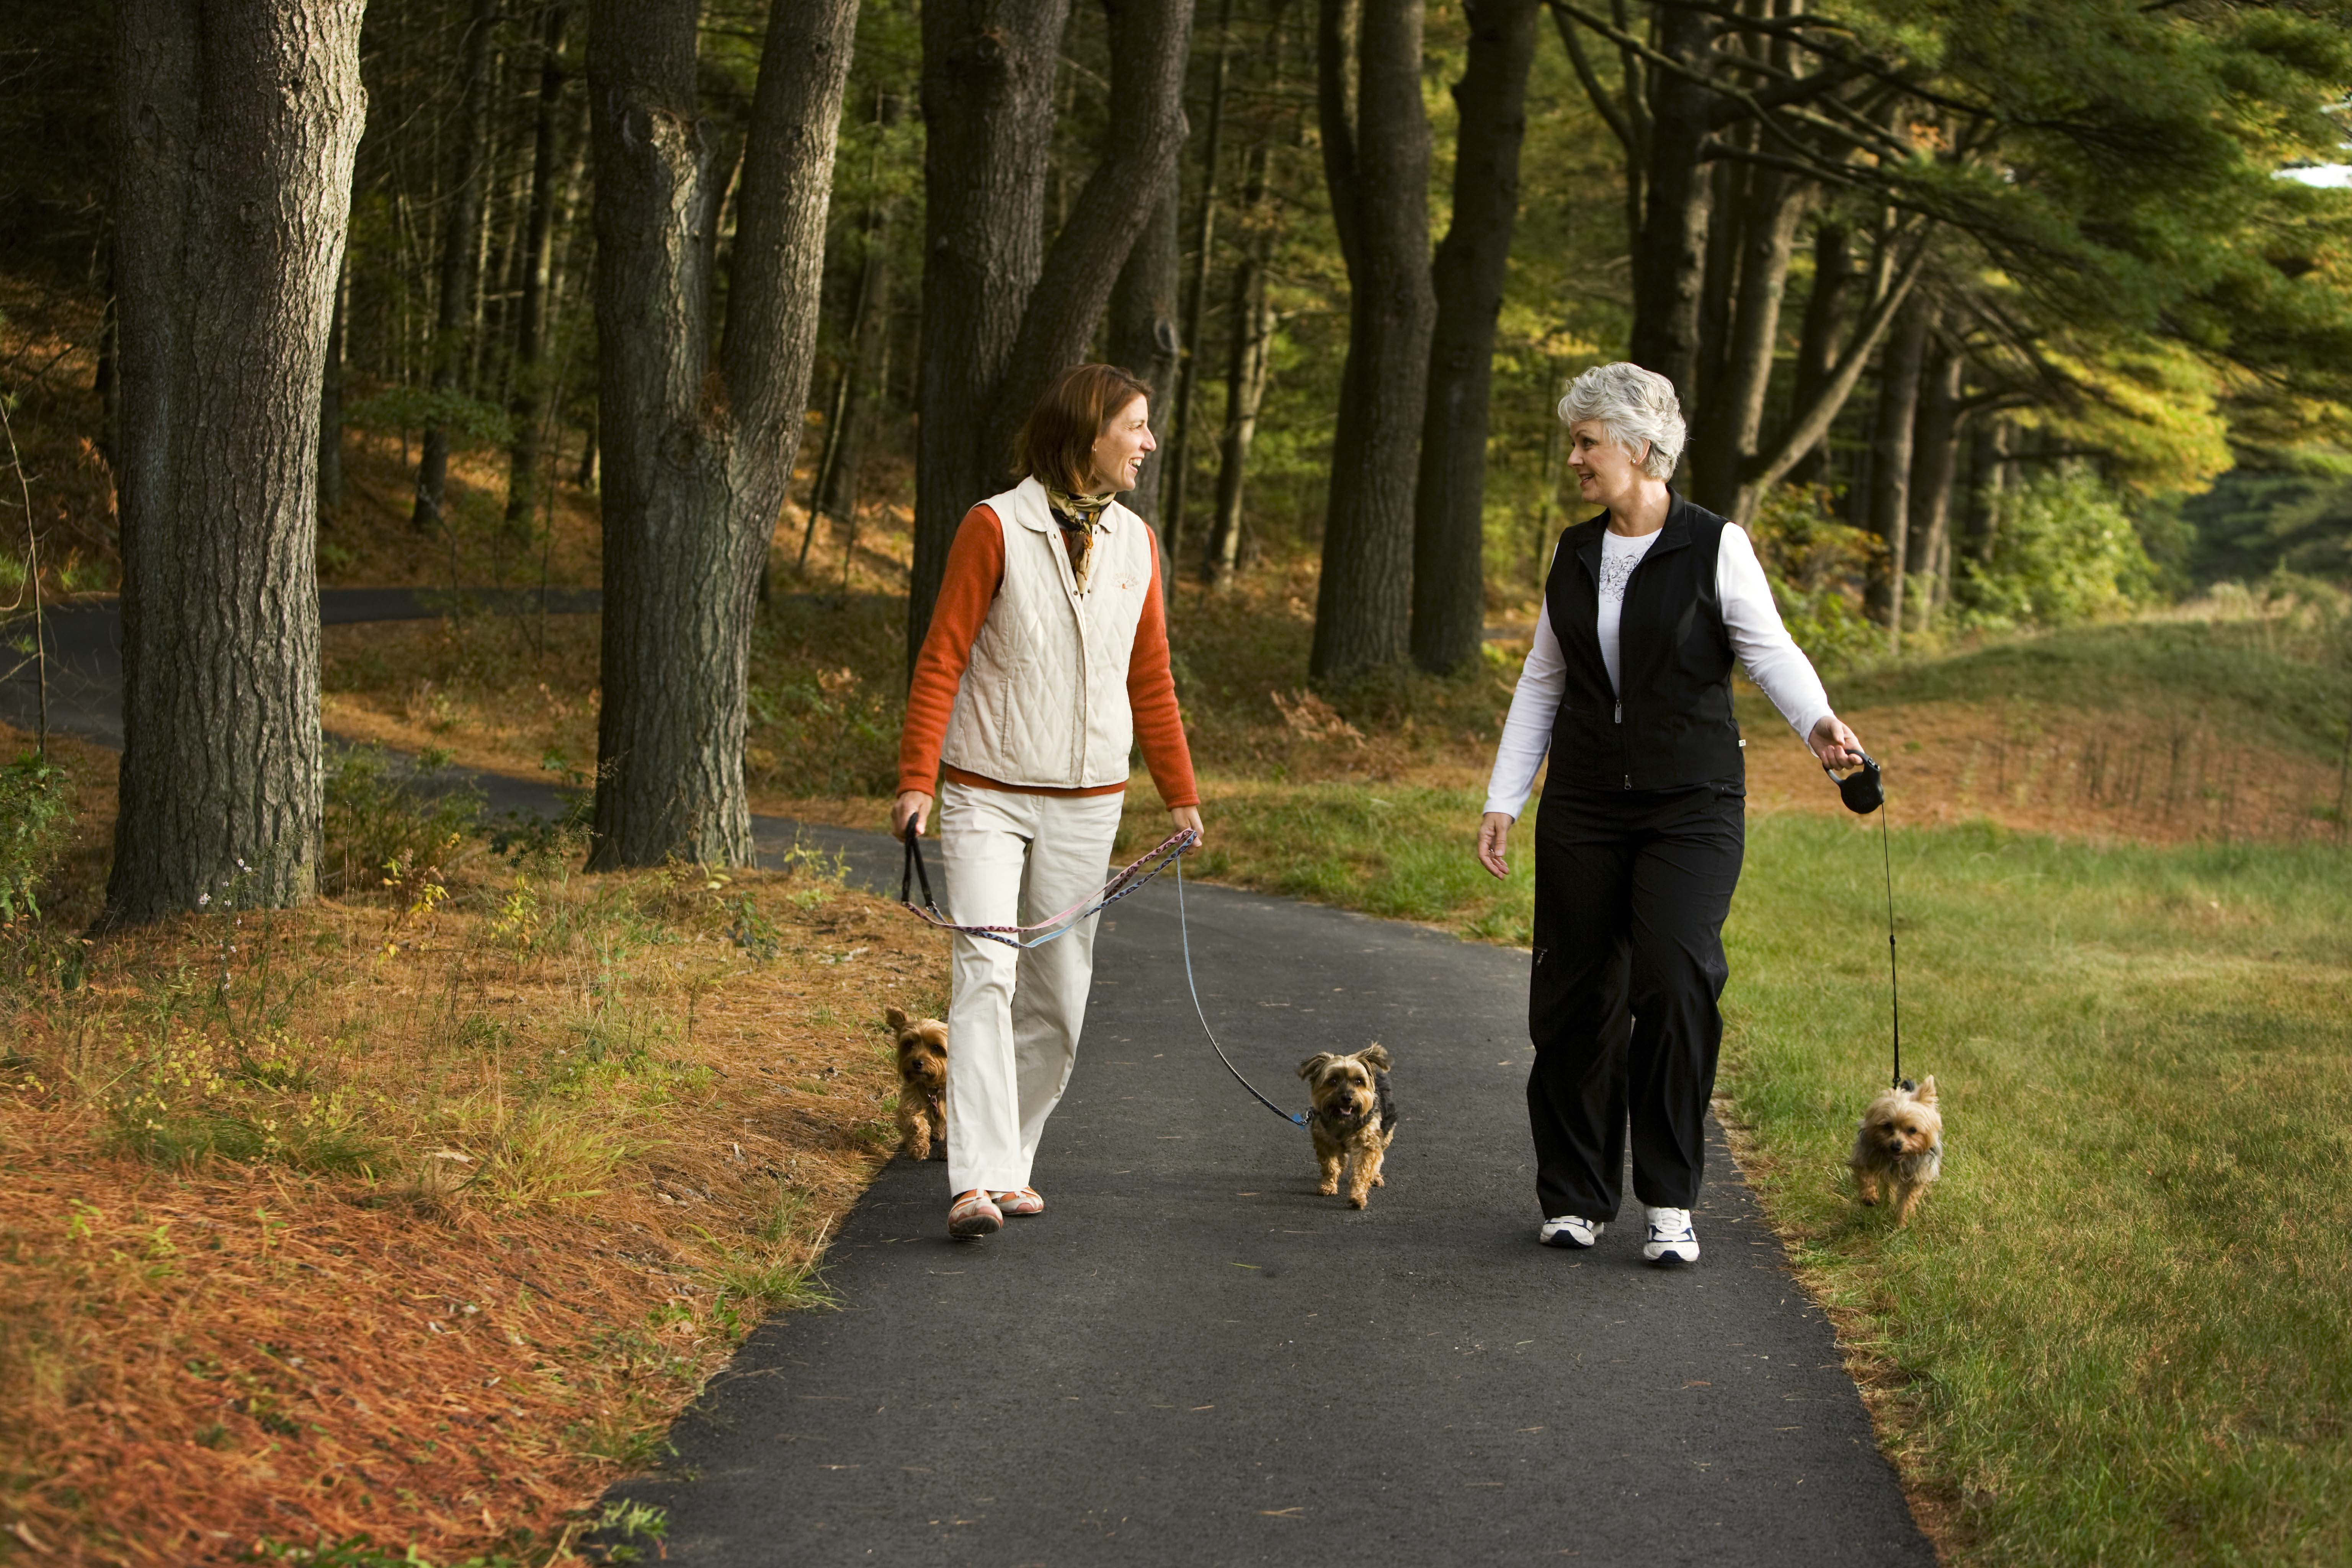 More than 10 Miles of Paved Lit Walking Trails